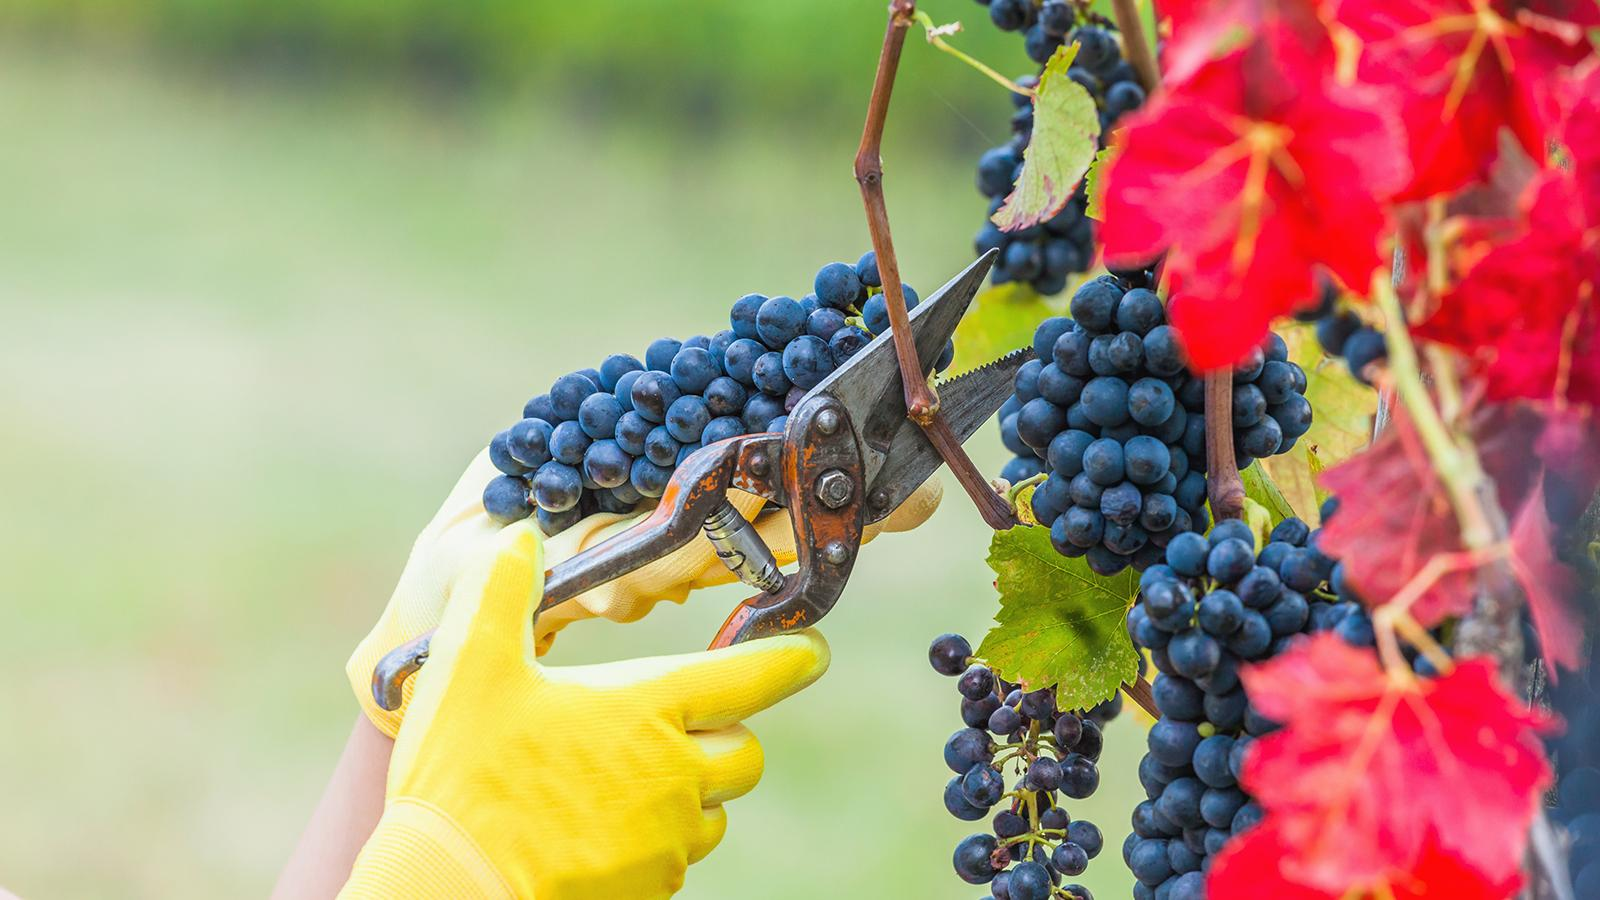 NASA and Harvard Experts Find Climate Change Has Fundamentally Altered French Wine Harvests